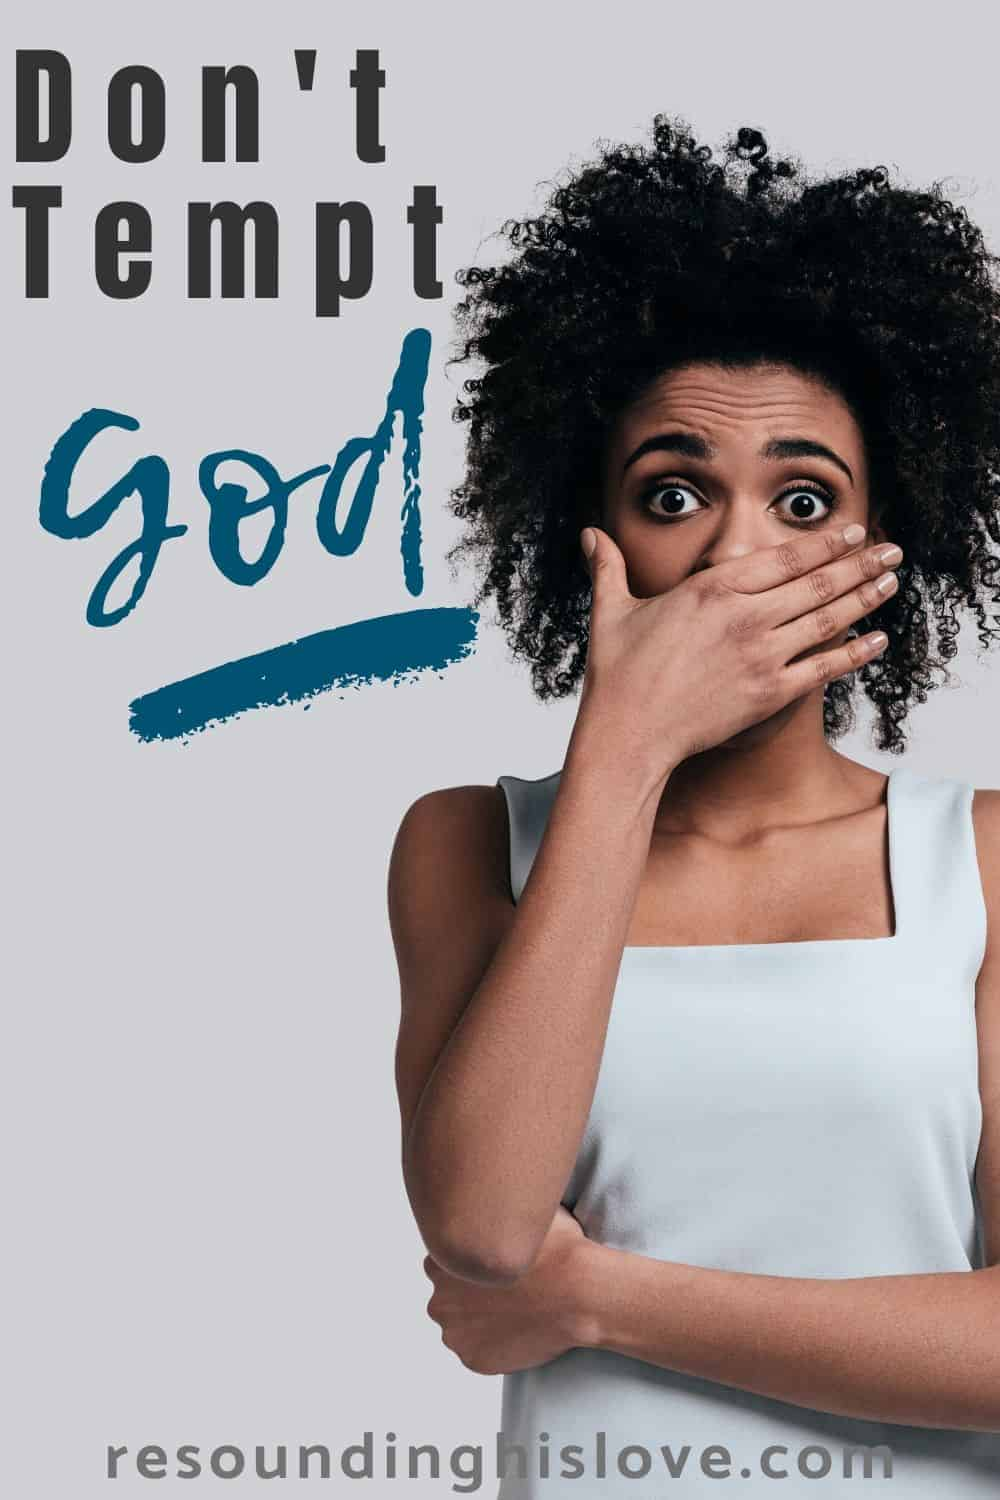 an image of a woman with her hand over her mouth with text do not test God